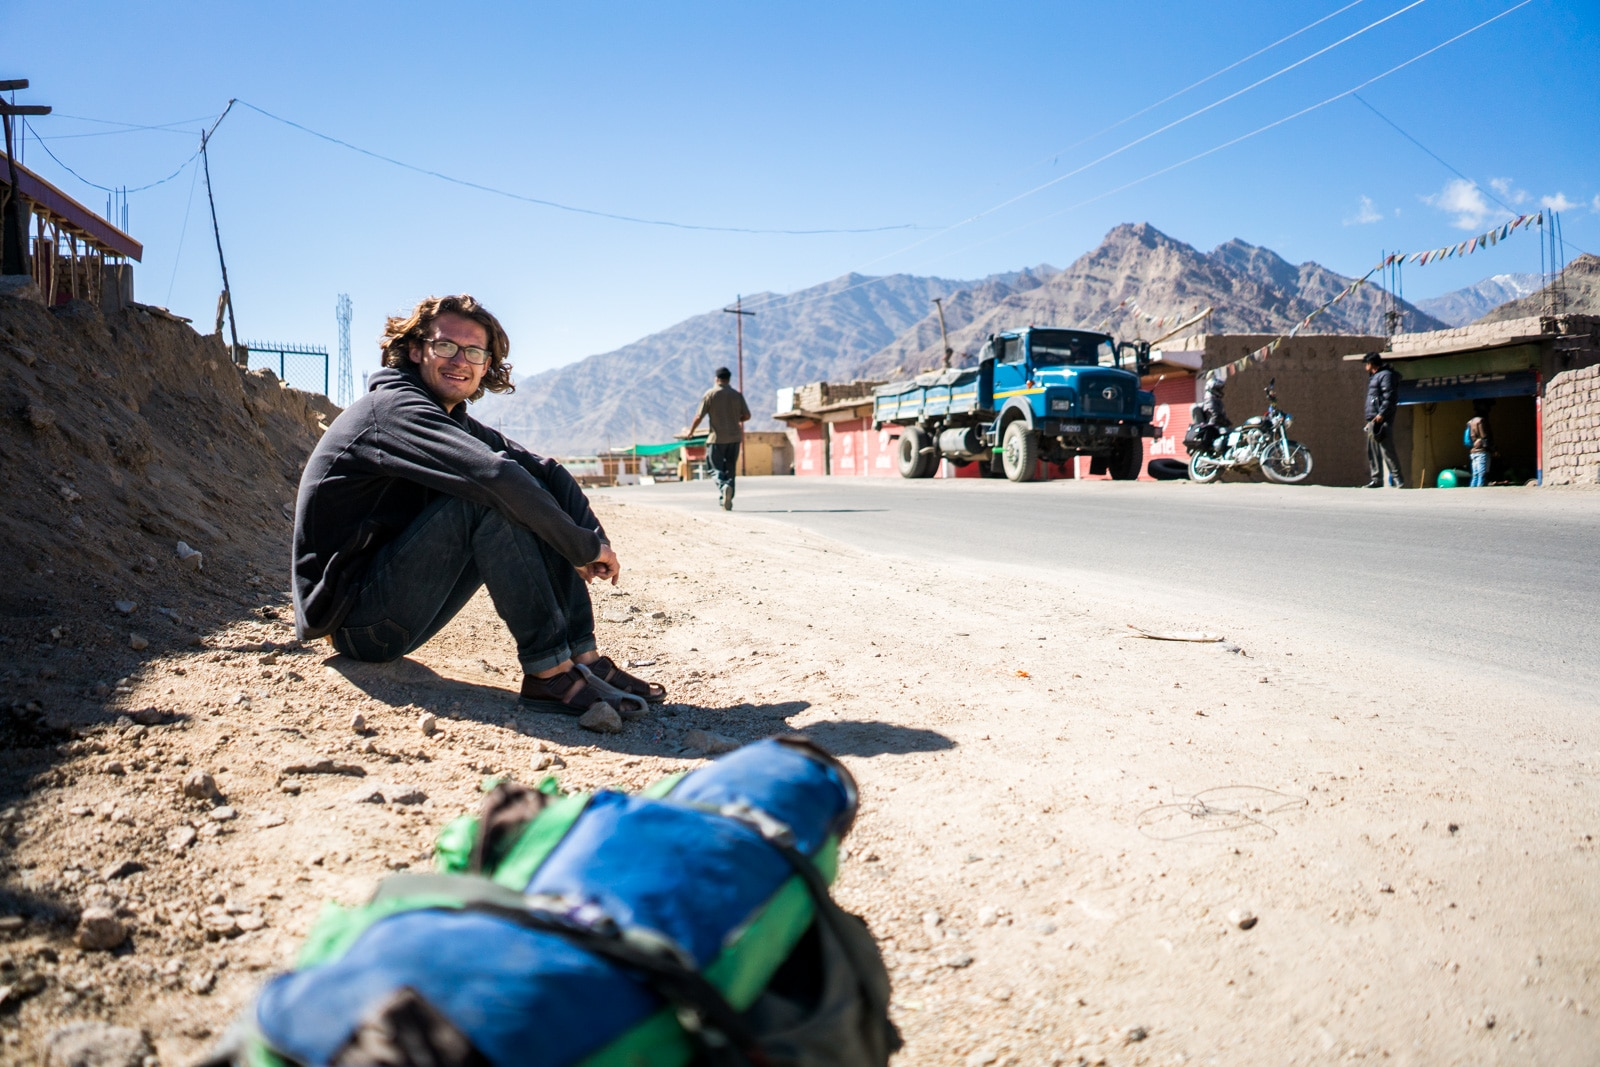 Waiting while hitchhiking the Leh - Manali highway - Sebastiaan on the roadside - Lost With Purpose travel blog